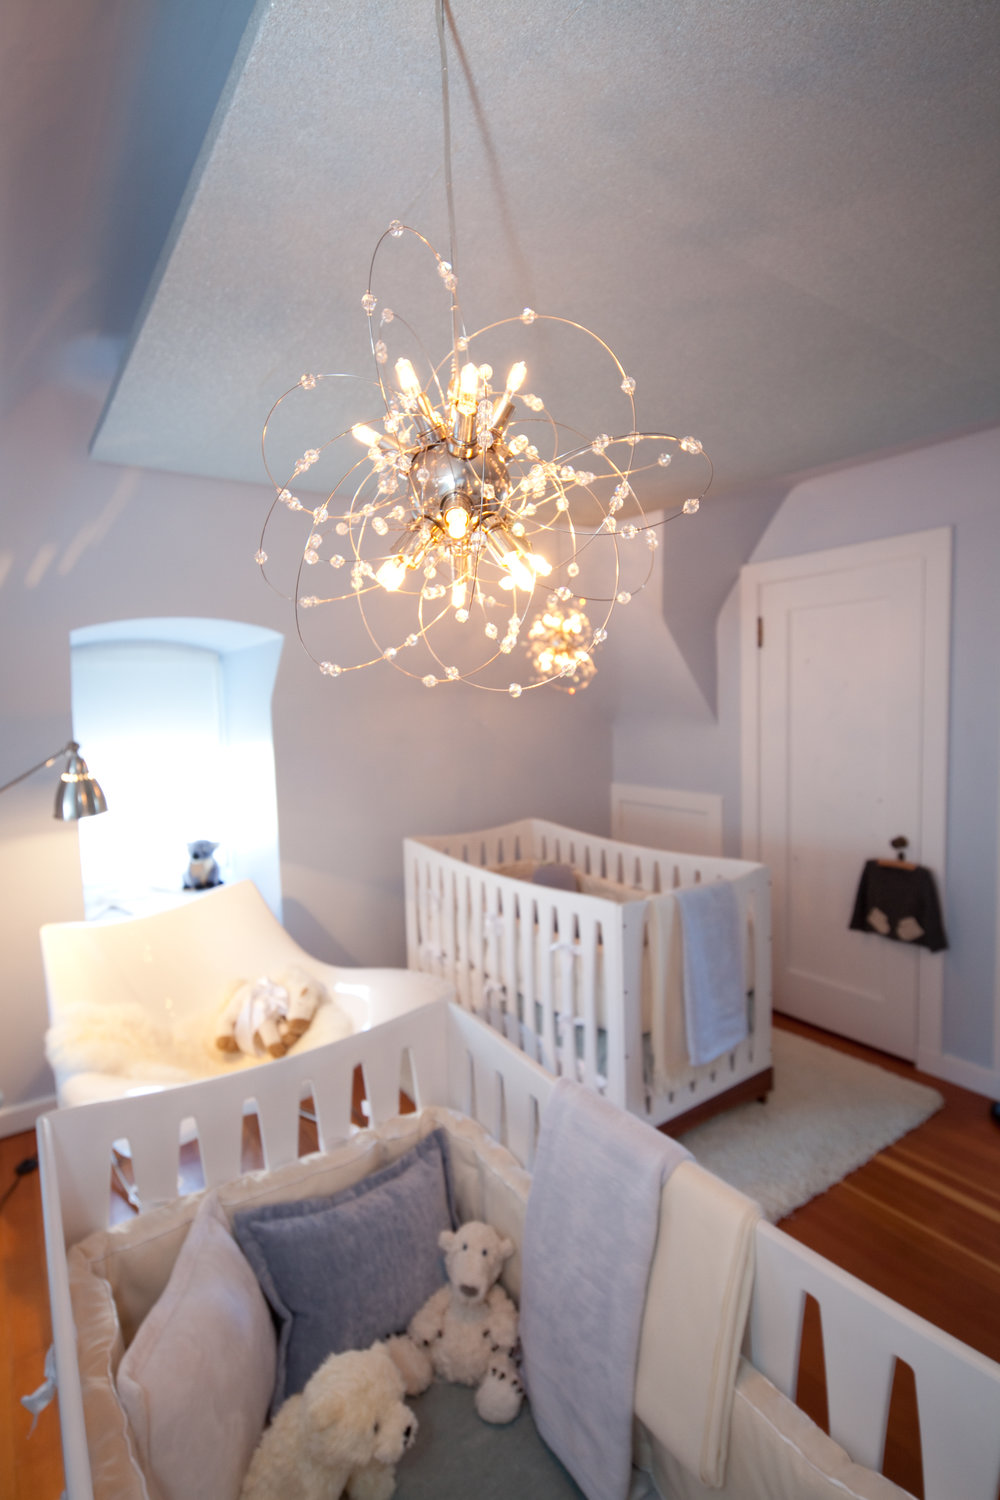 nursery, crib, modern, light, white, baby blue, chandelier, elegant, open, soft tones, soft textures